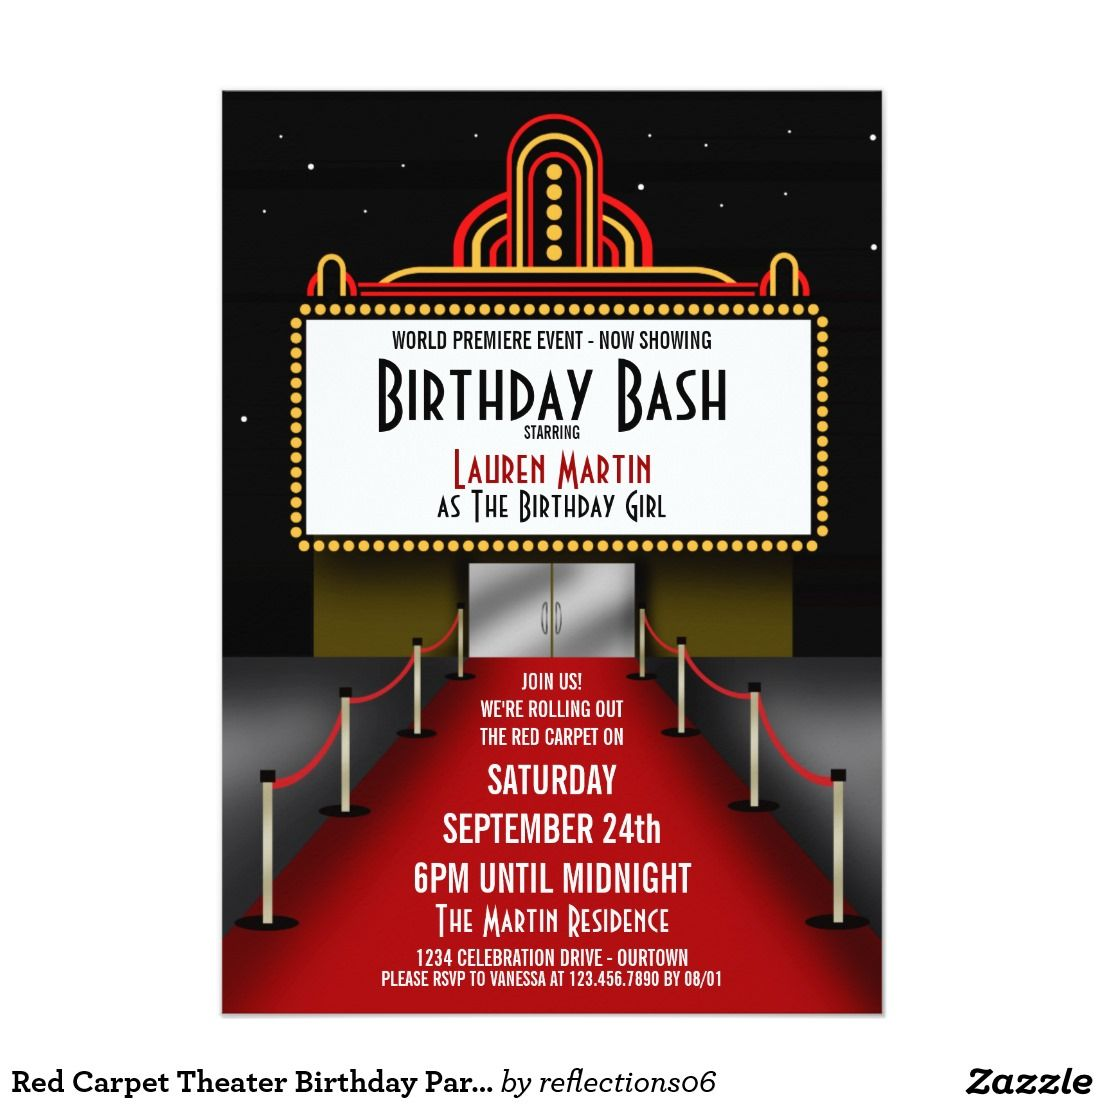 Red Carpet Theater Birthday Party Invitation | Party invitations ...